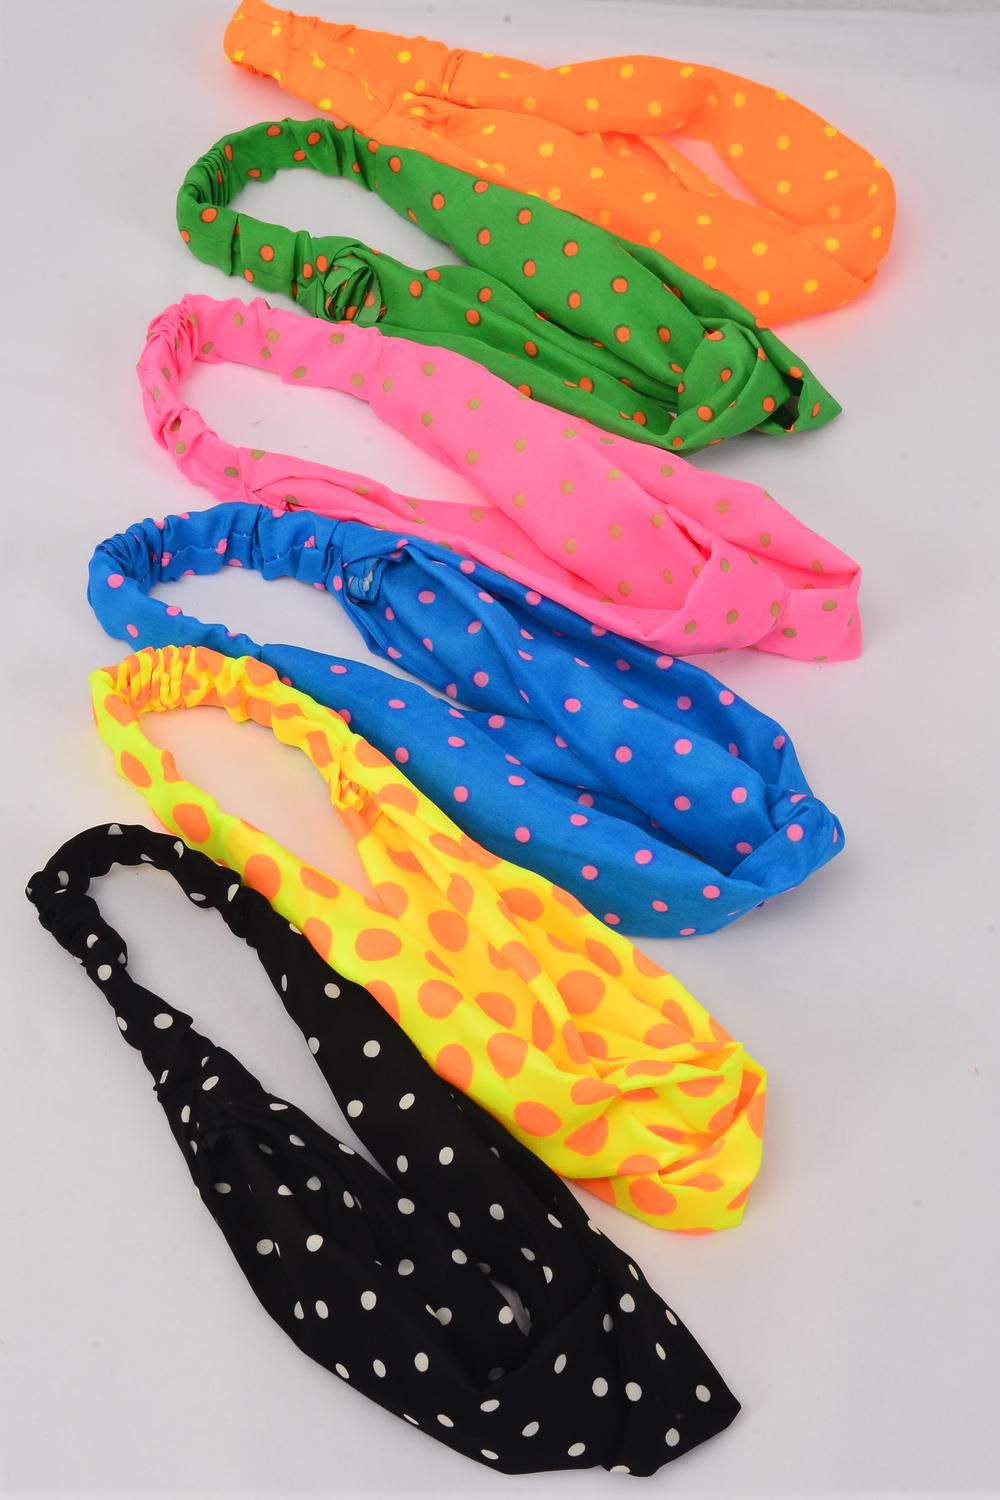 Headband Infinity Style Fabric Polkadots Pattern Stretch/DZ **Stretch** 2 of each Color Asst,Individual Hang Tag & OPP Bag & UPC Code,